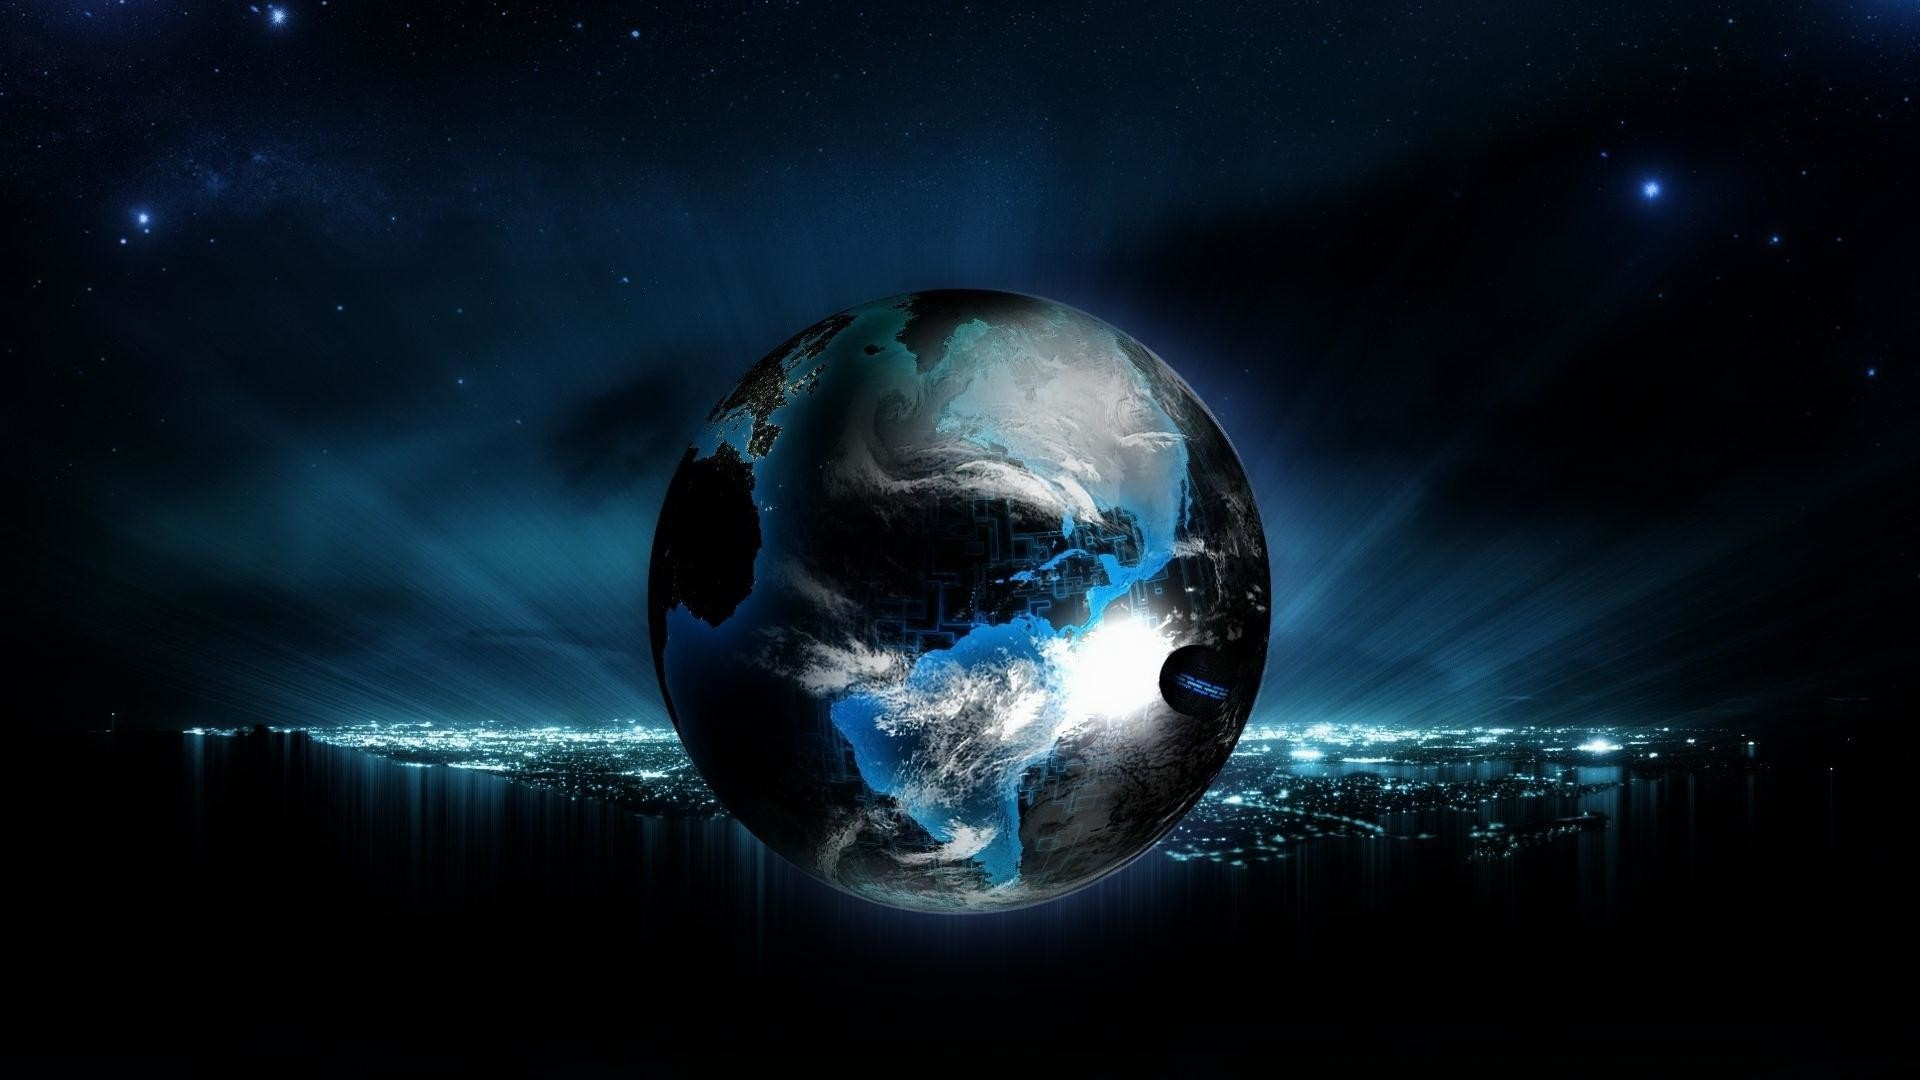 3d Live Animated Wallpaper Download For Windows 7 Cool Live Wallpapers For Pc 50 Images